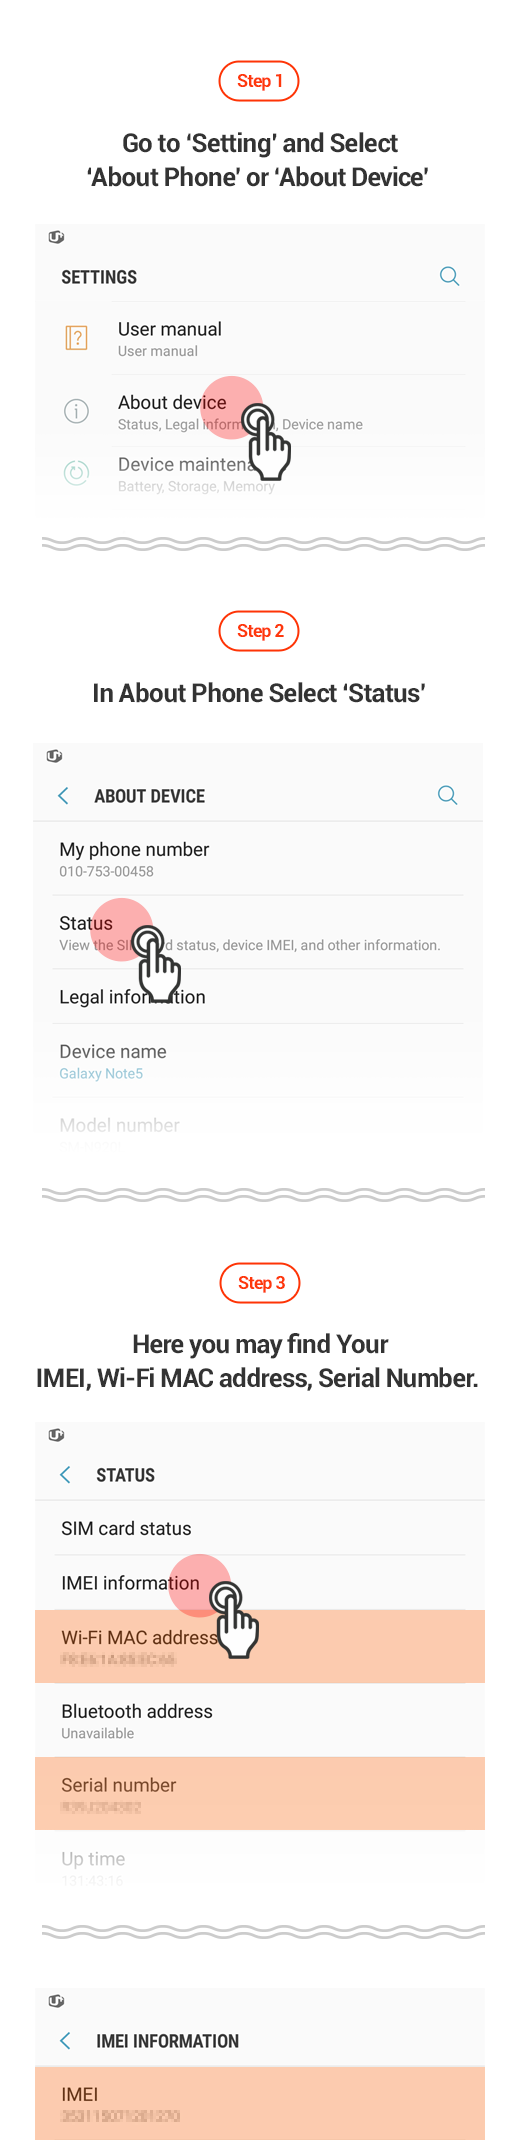 How to Check IMEI ,Wi-Fi MAC address,Serial Number on Your Android Phone